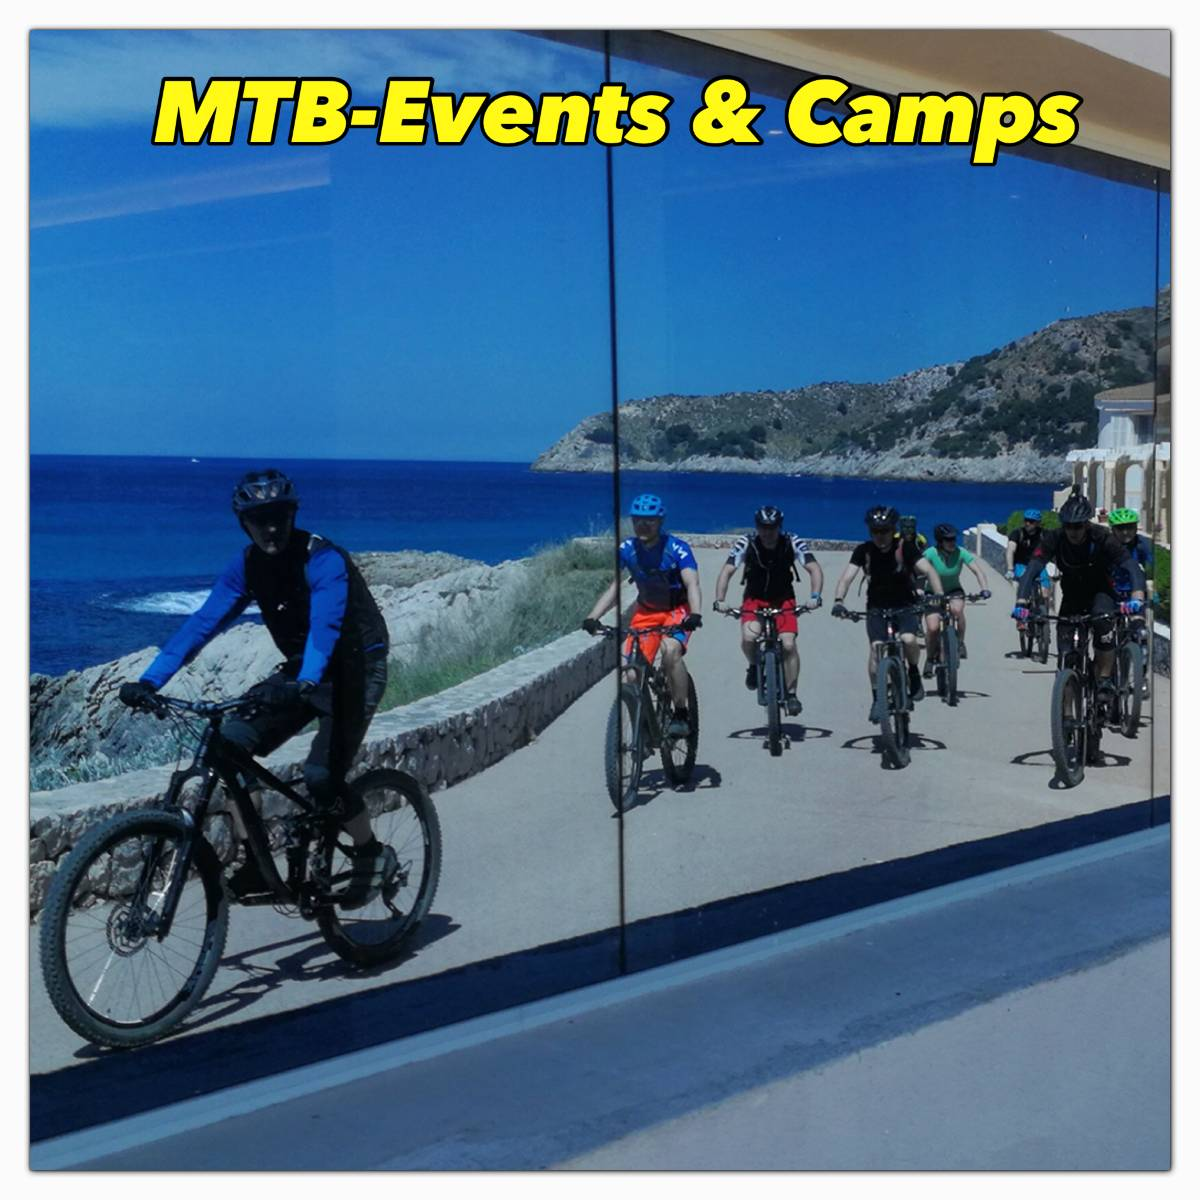 Mountain Bike Events and Camps in Spain, Majorca and South Tyrol